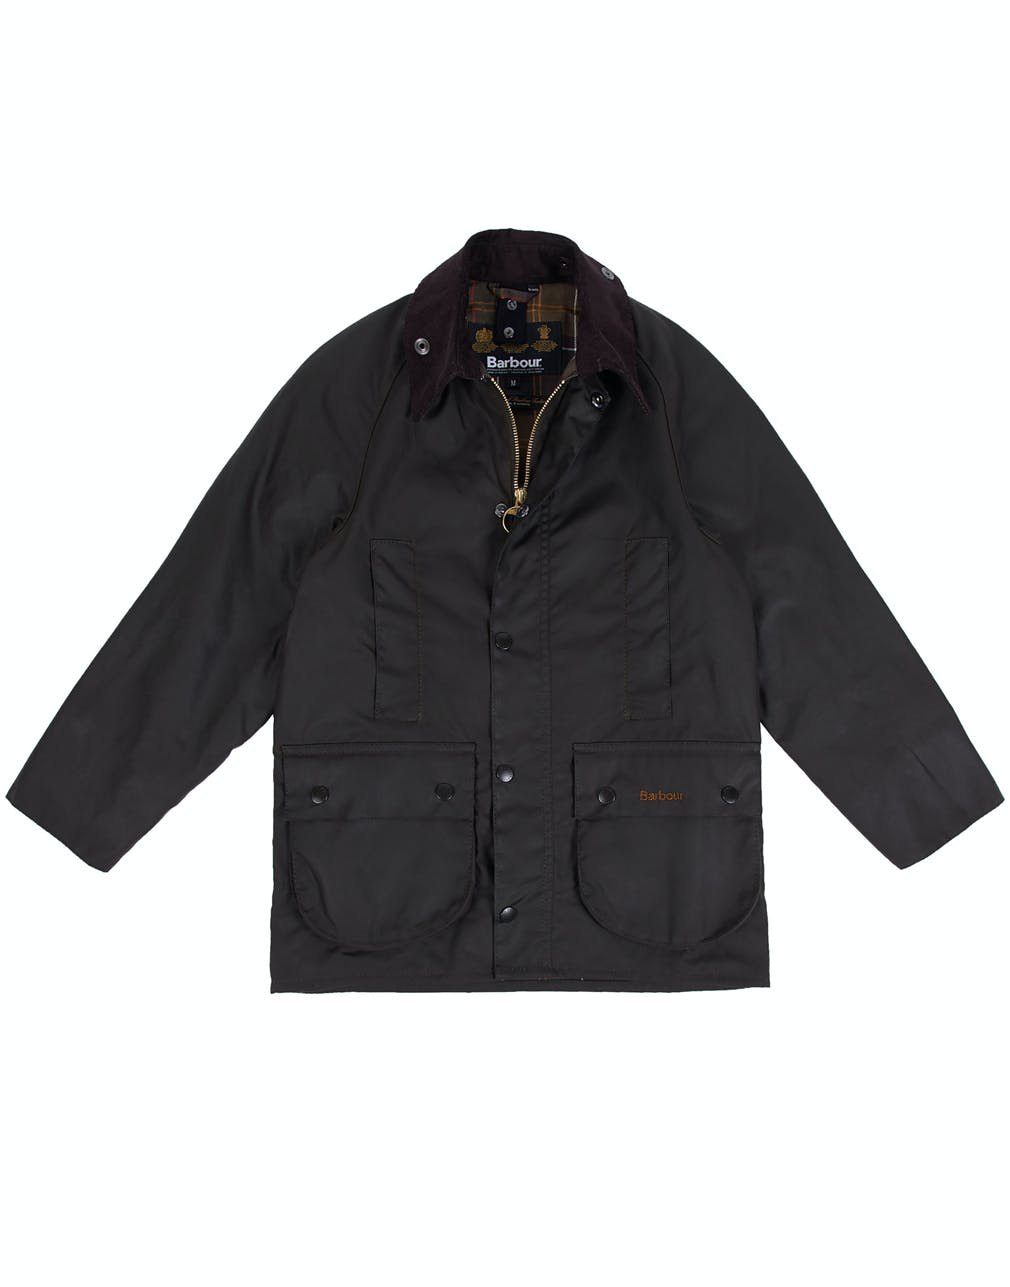 best sale wholesale online speical offer Barbour Classic Beaufort Kid's Wax Jacket - Edgewood New Olive   Country  Attire UK